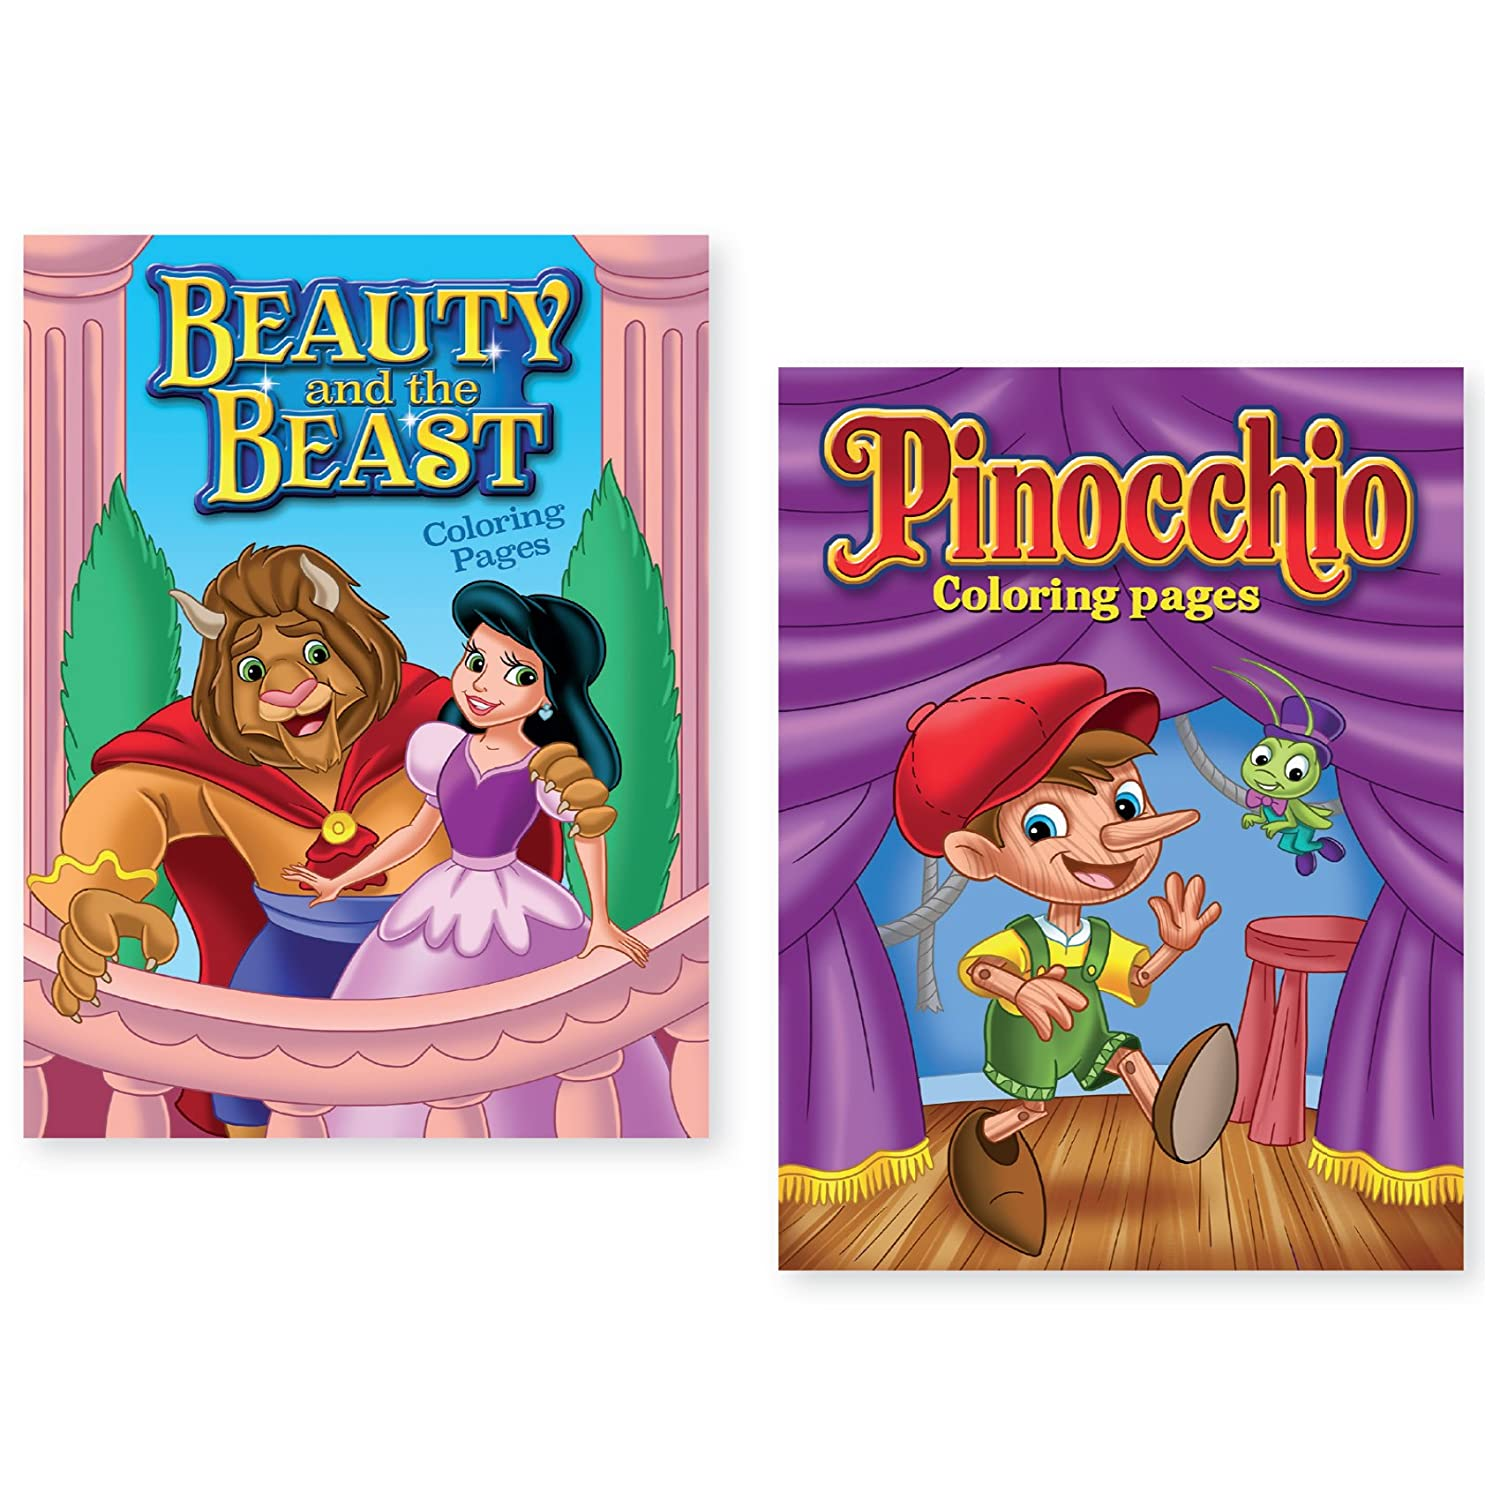 Bundle of 2 Beauty and the Beast and Pinocchio Coloring Books International Greetings